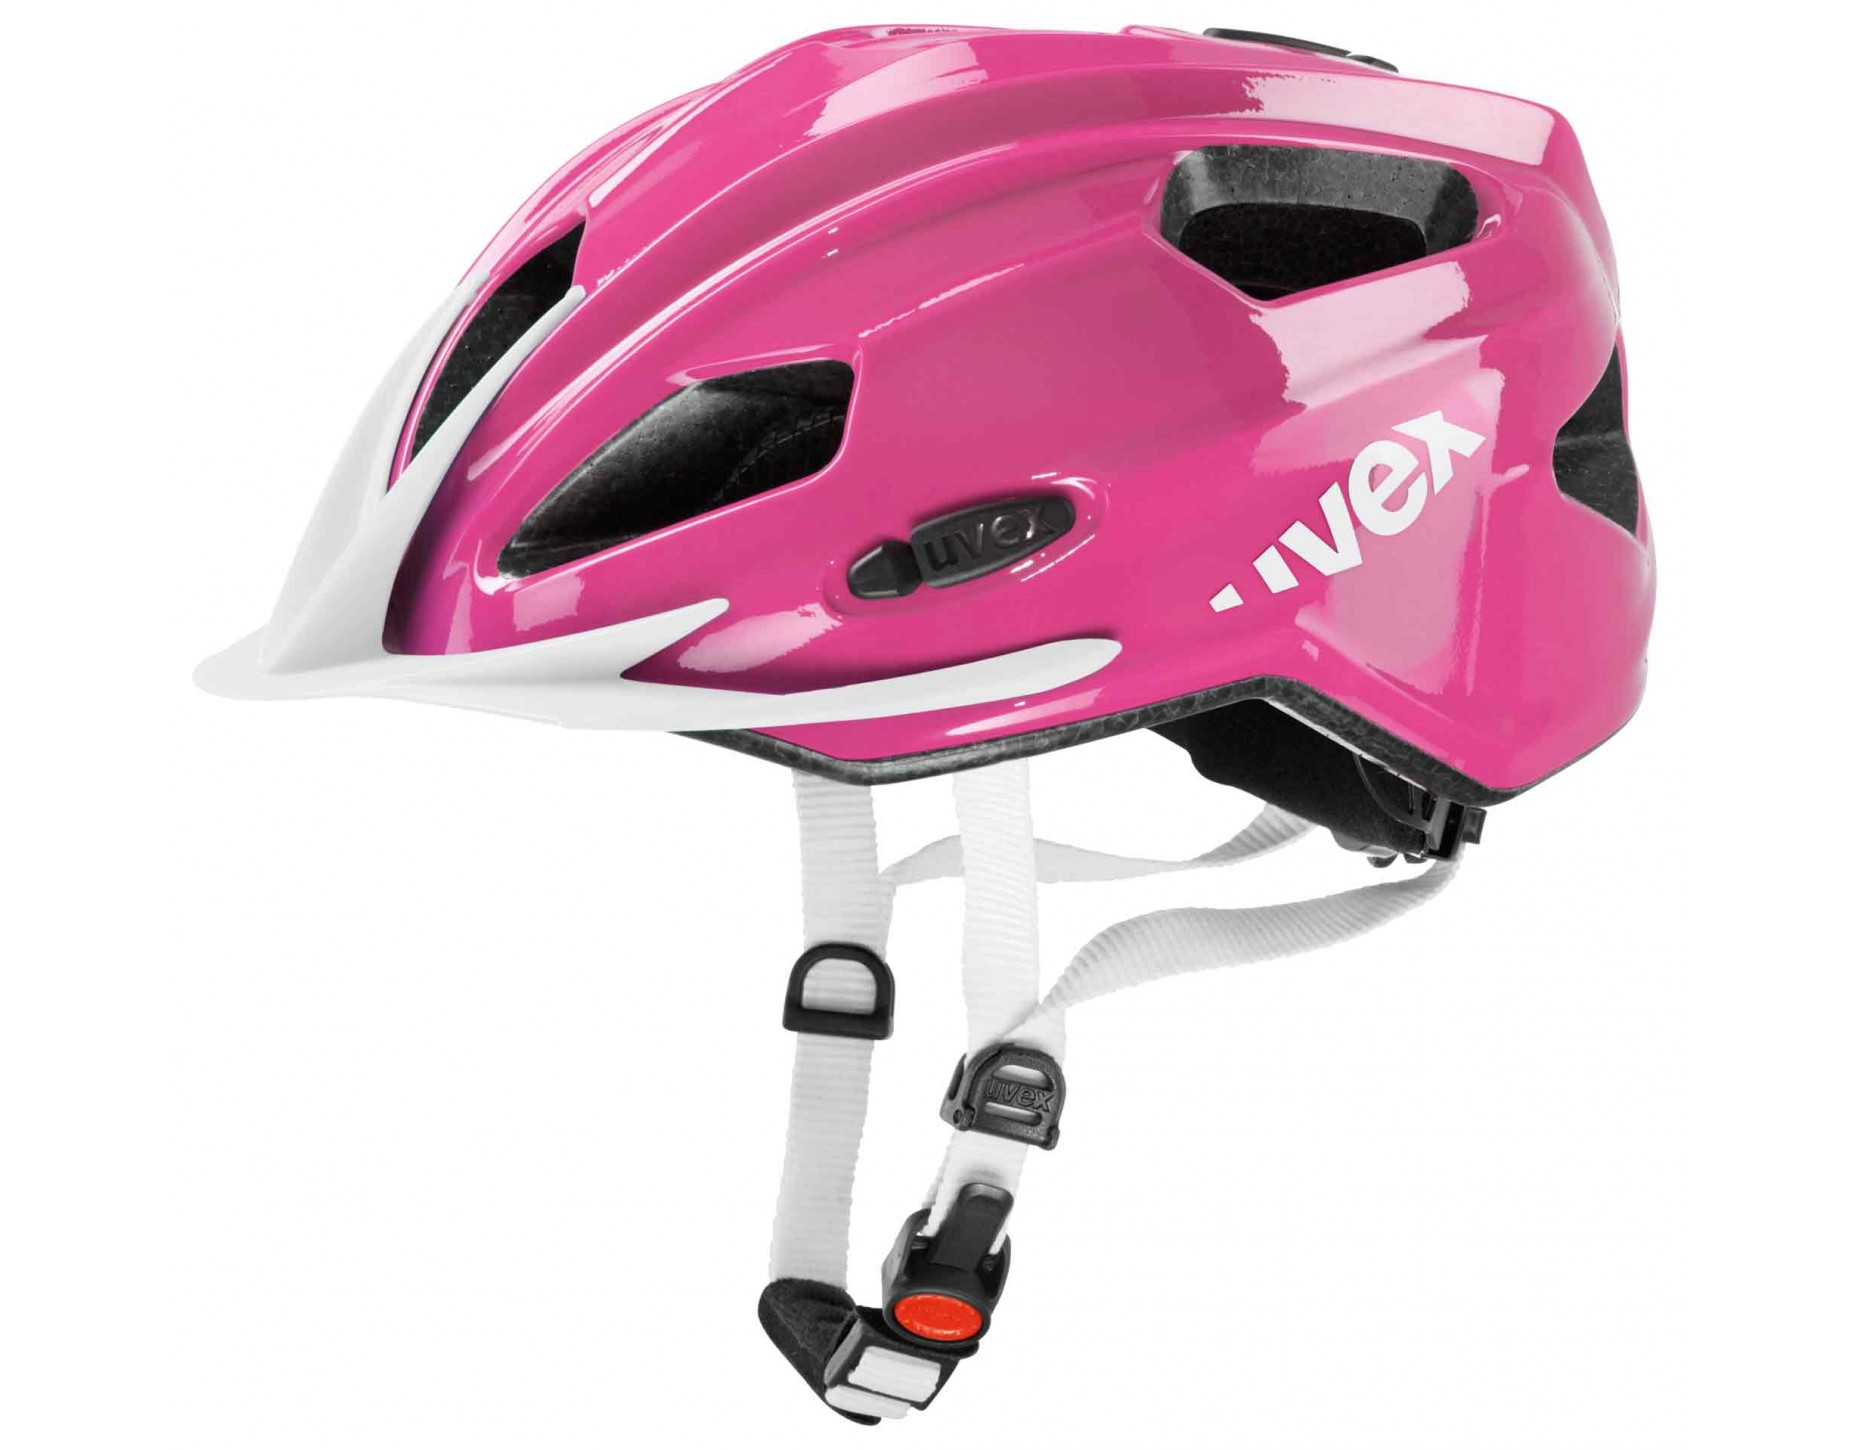 uvex quatro junior kids helmet pink white